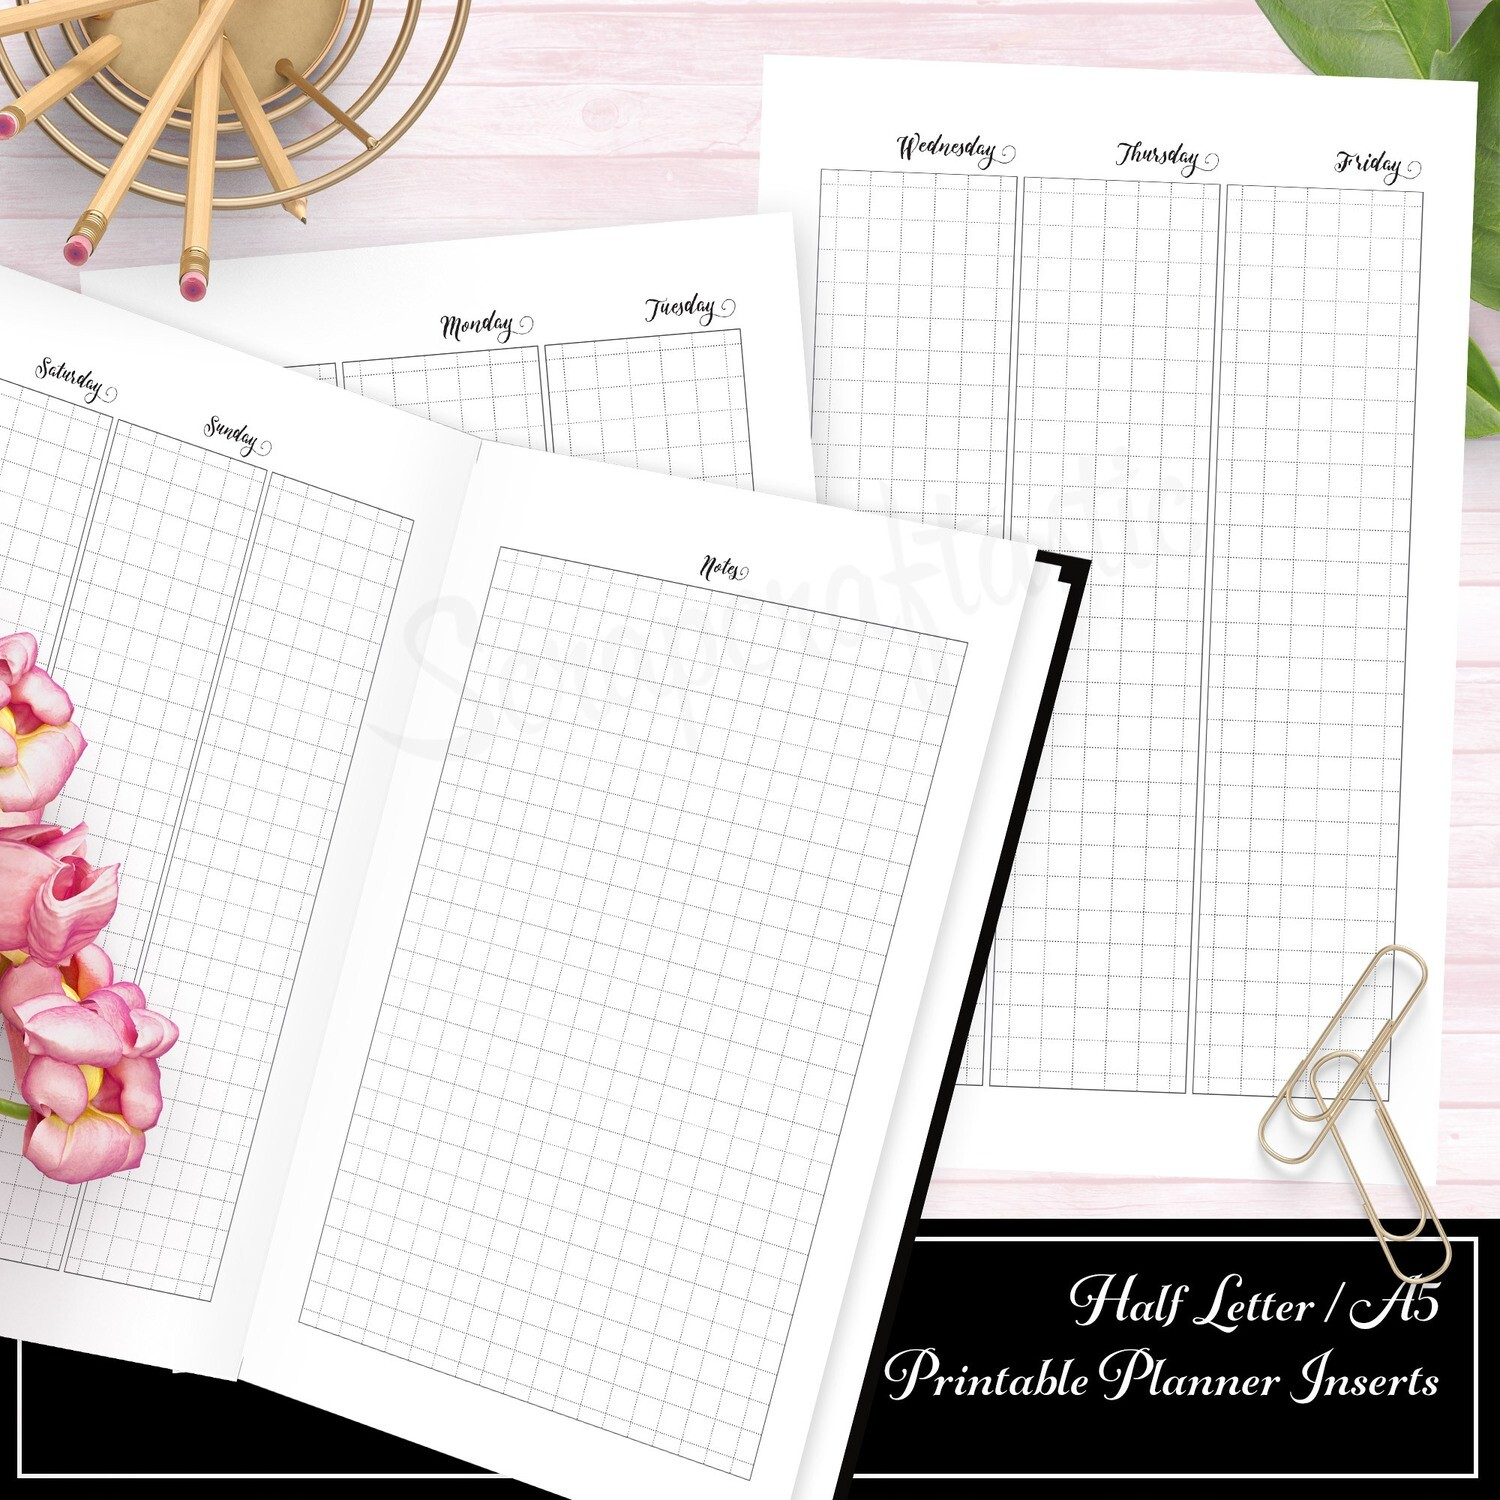 HALF LETTER A5 RINGS/DISC - Deluxe Week on Four Pages (WO4P) Grid Printable Insert